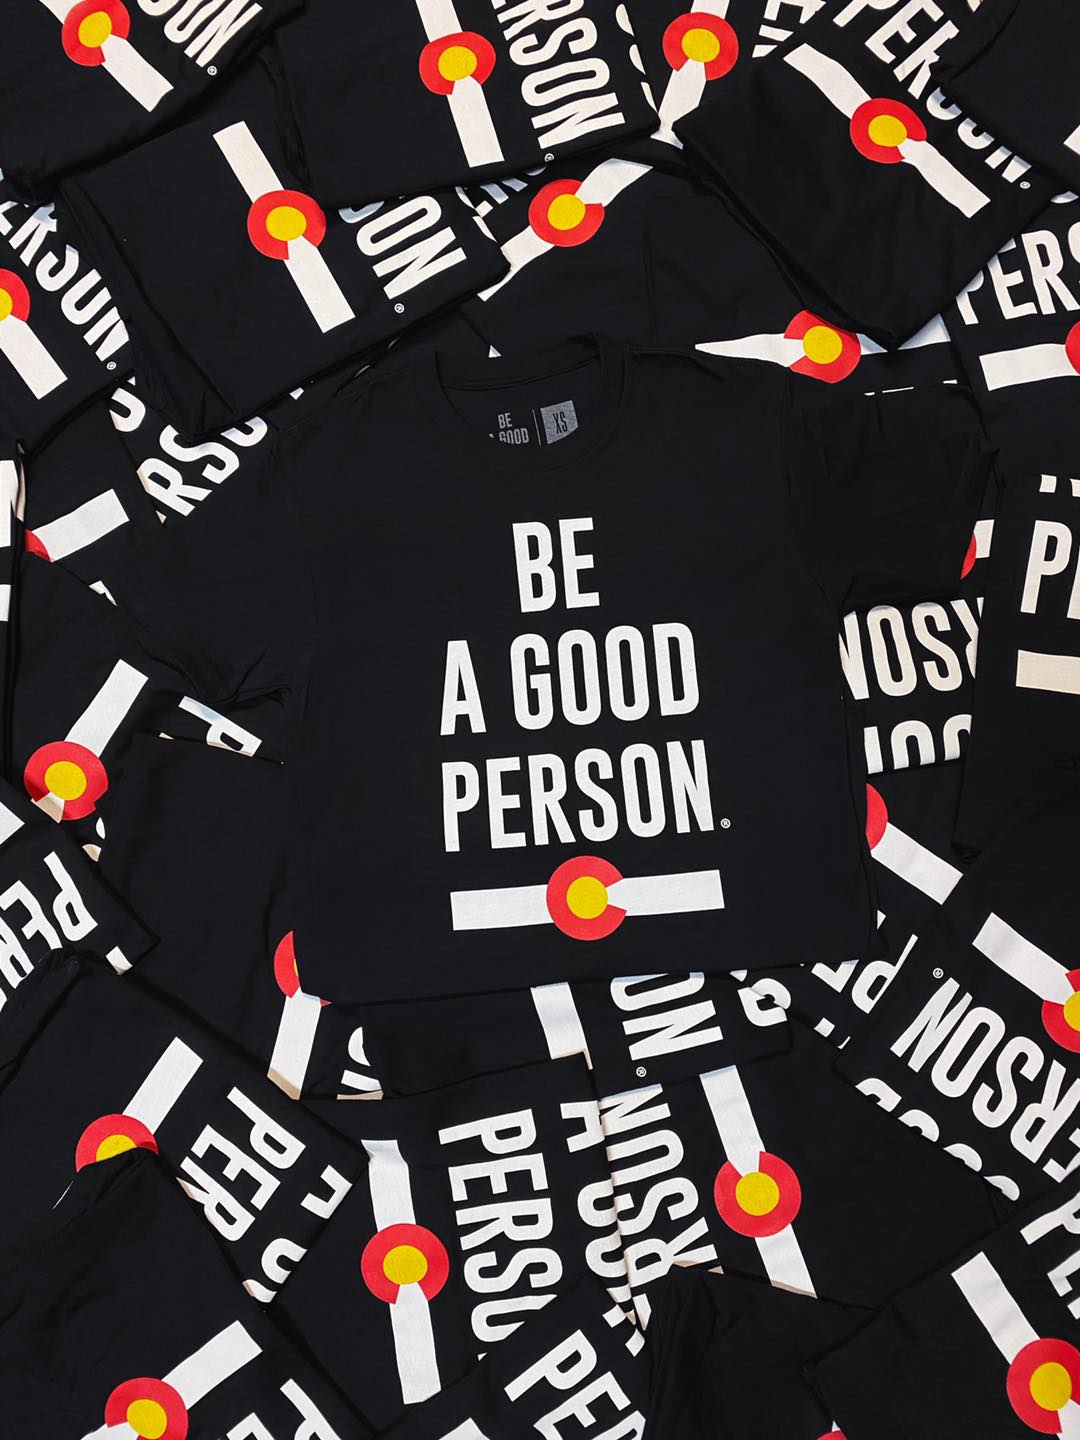 Image of Be A Good Person's black Colorado shirt